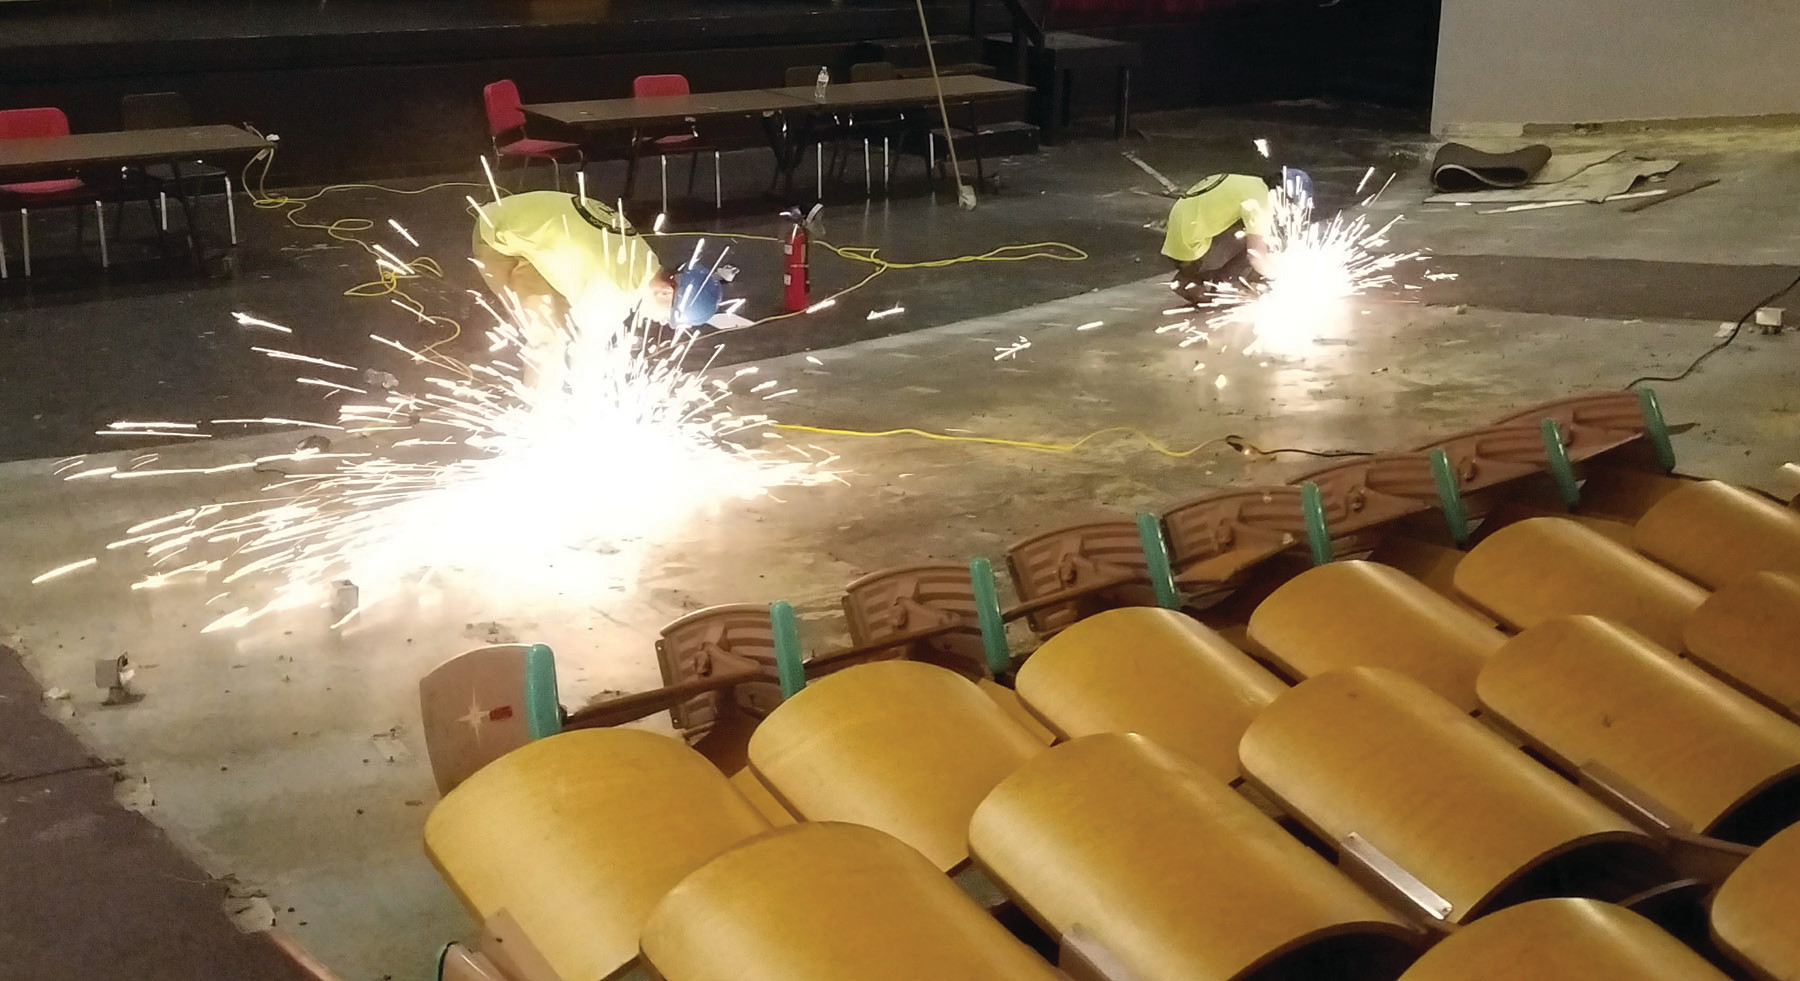 OUT OF THE CLASSROOM AND ON THE JOB: Sparks were flying on June 22 at Cranston West as the newest graduates from the New England Laborers'/Cranston Public Schools Construction Career Academy put their education to the test, using the skills they learned in school on their first official job site.